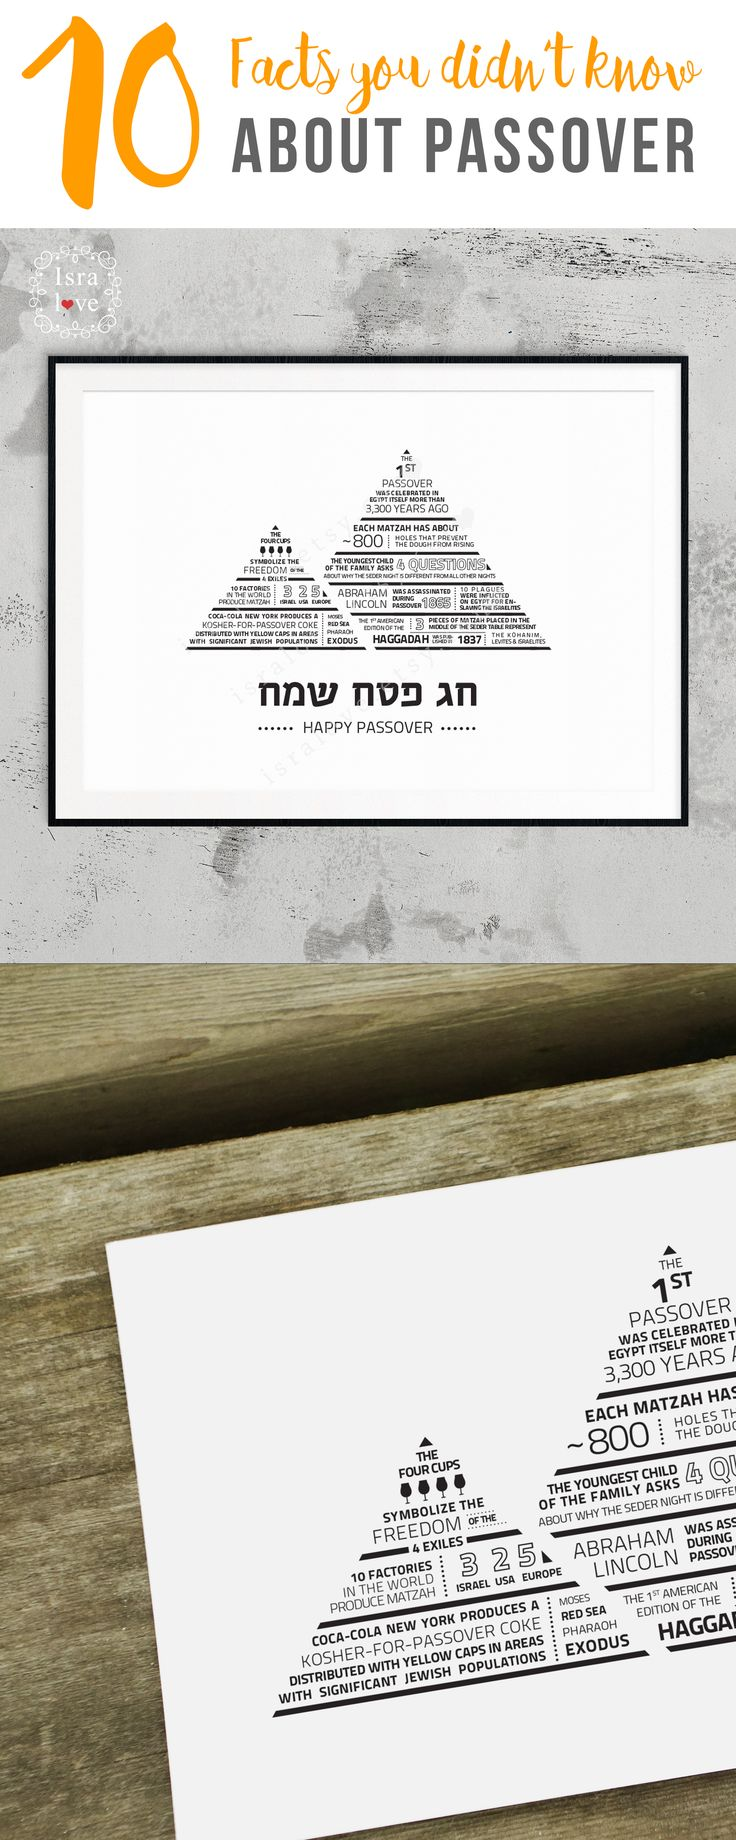 81 Best Passover Images On Pinterest Jewish Gifts Jewish Art And